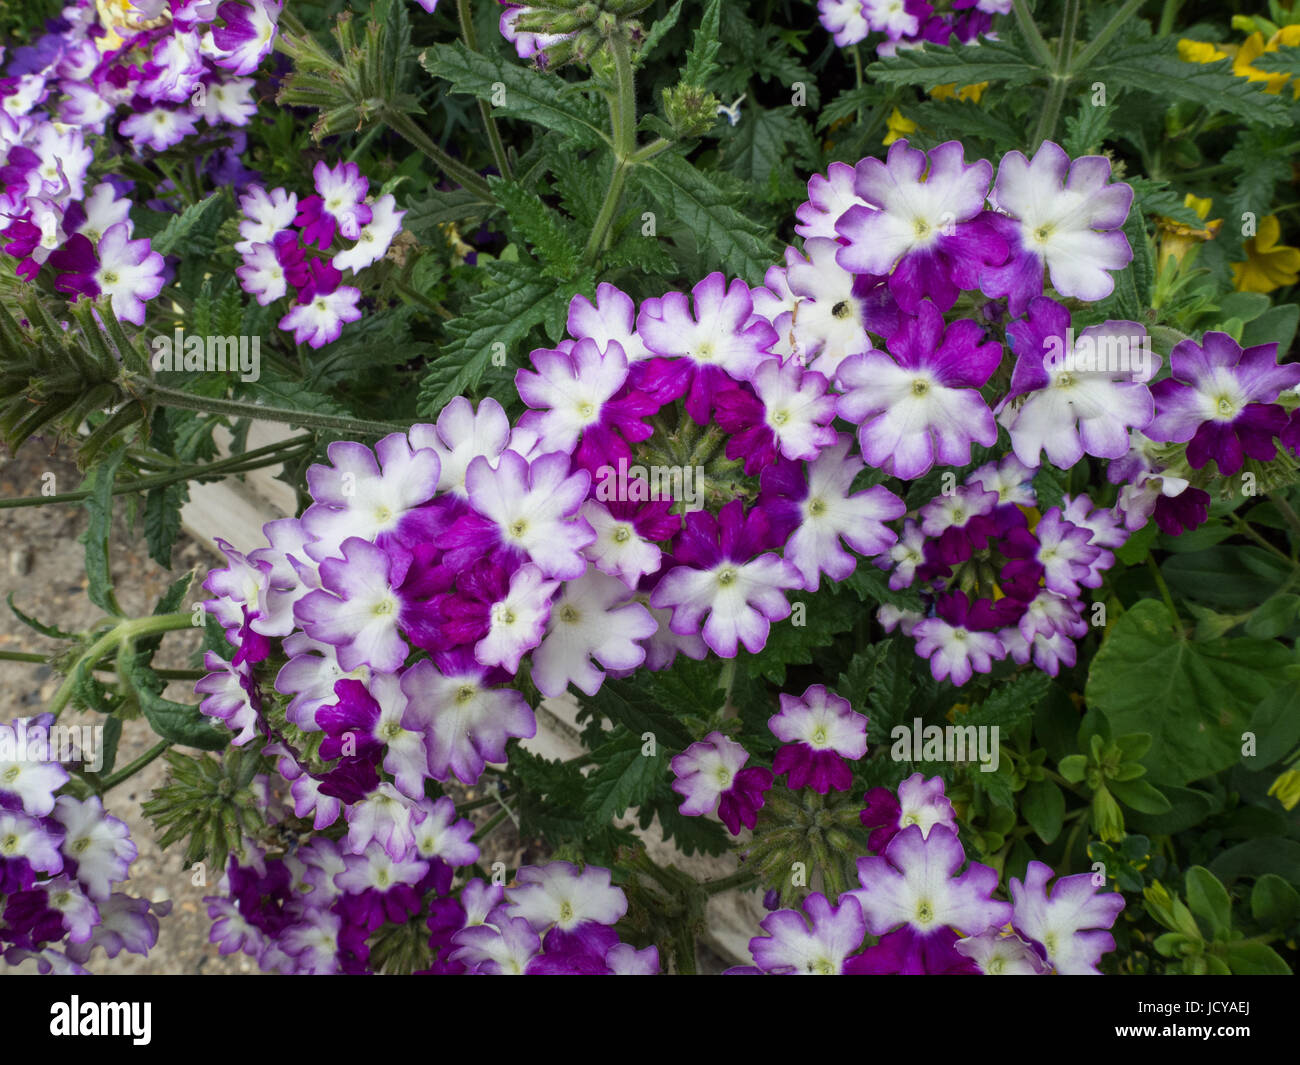 Close up of the flowers of Verbena Sparkle Dark Violet - Stock Image